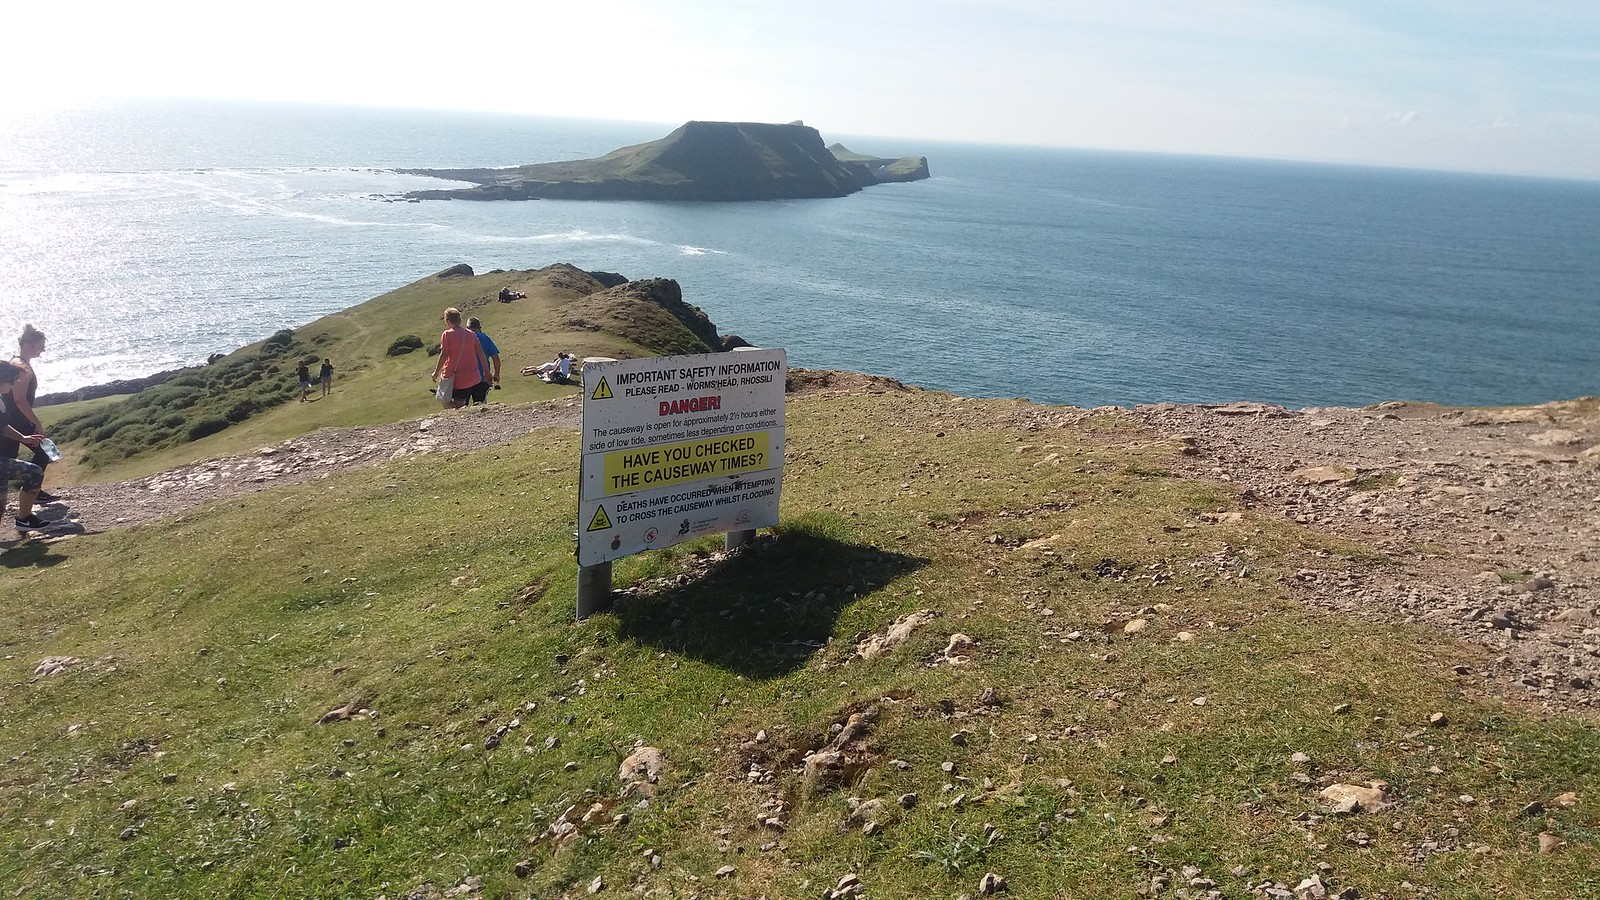 20160829_161233 Worms Head warning